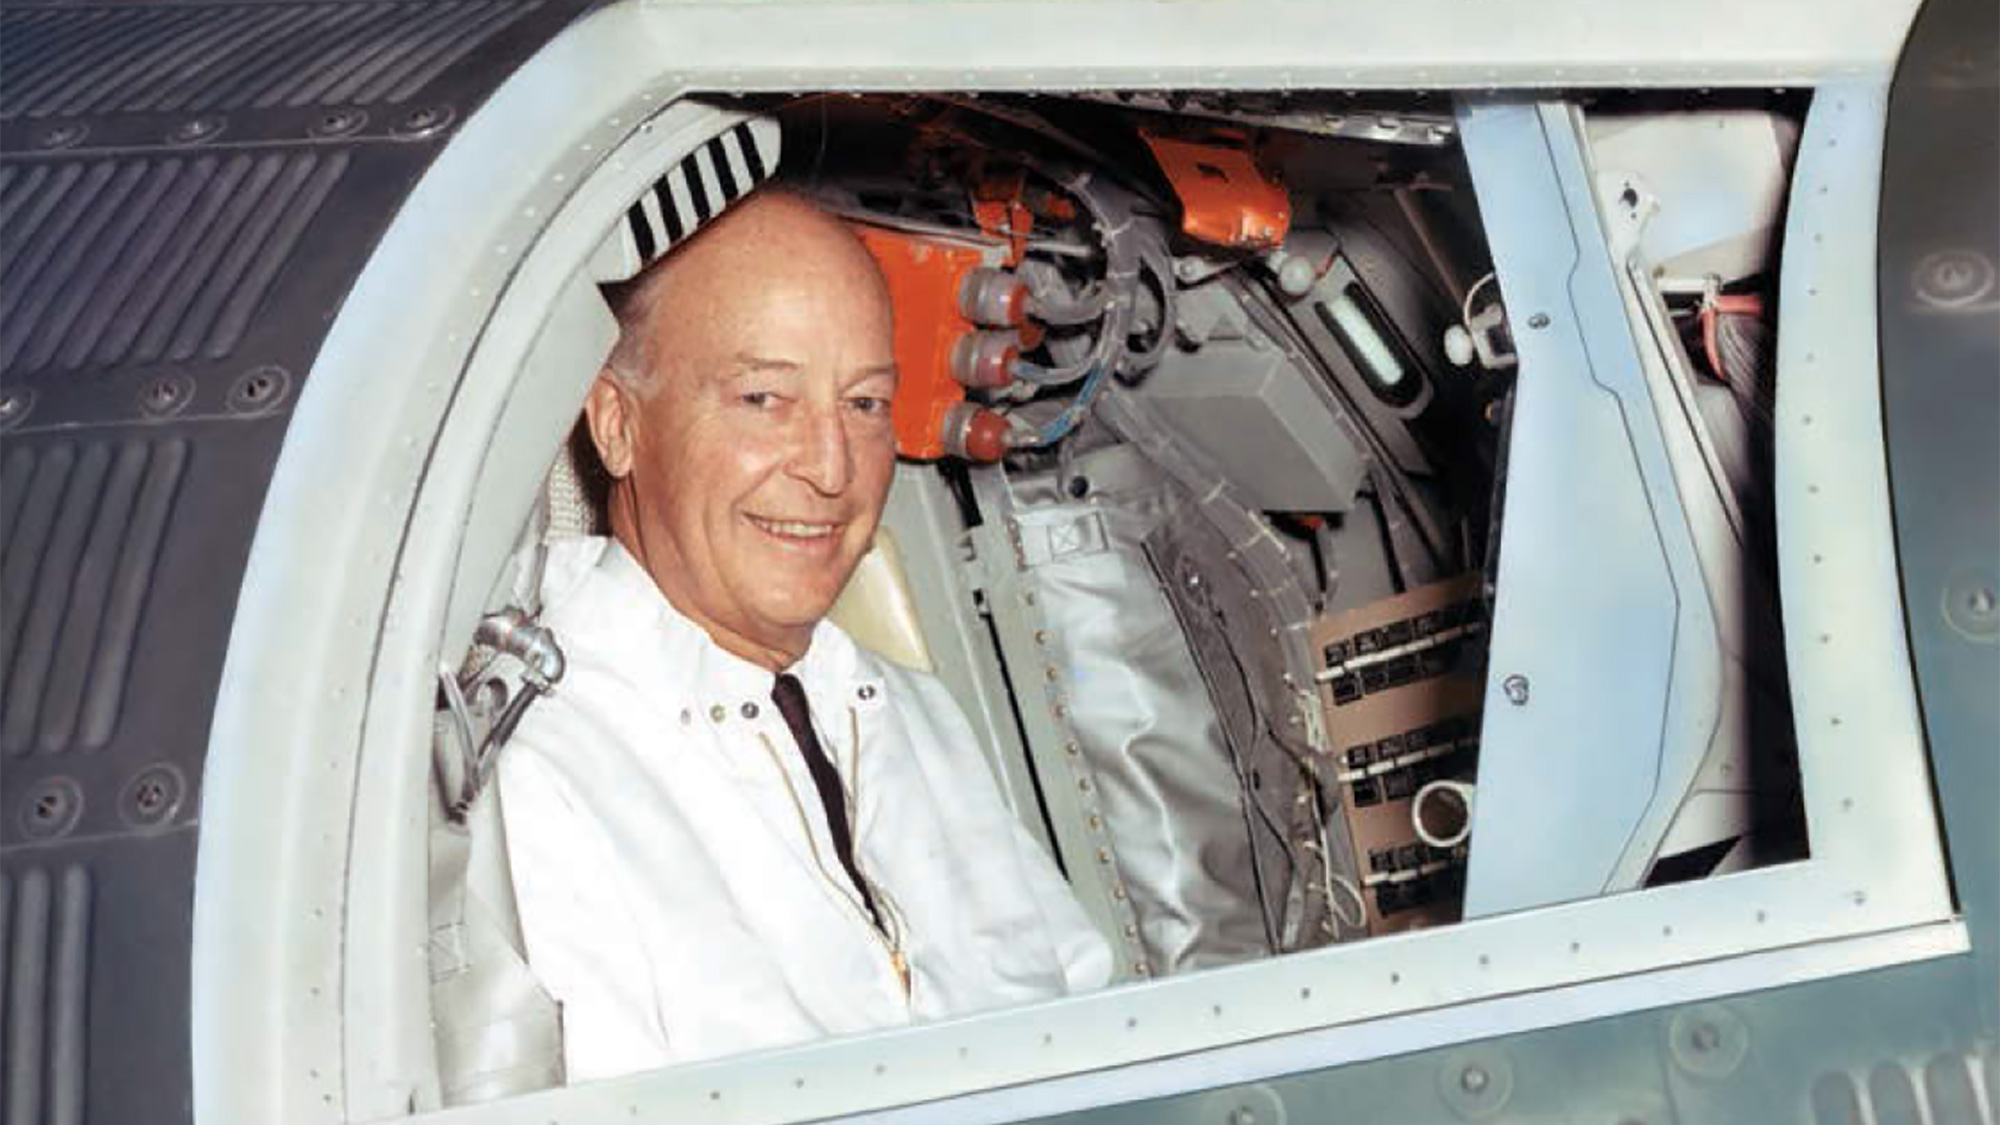 Herbert F Johnson, Jr. in a Mercury space capsule at McDonnell Aircraft